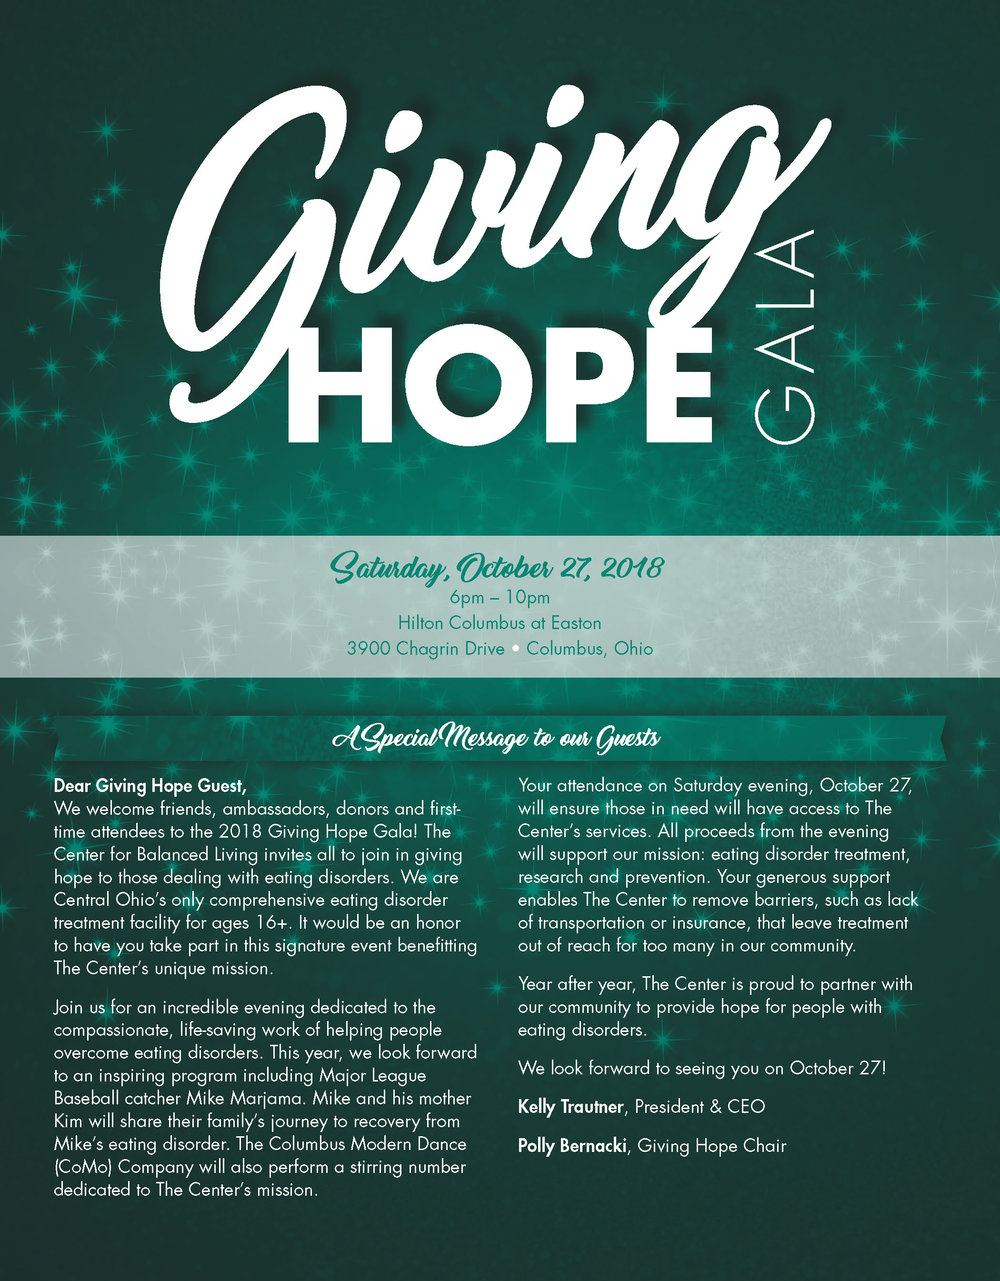 Giving Hope Gala Electronic Invitation 2018 (002)_Page_1.jpg